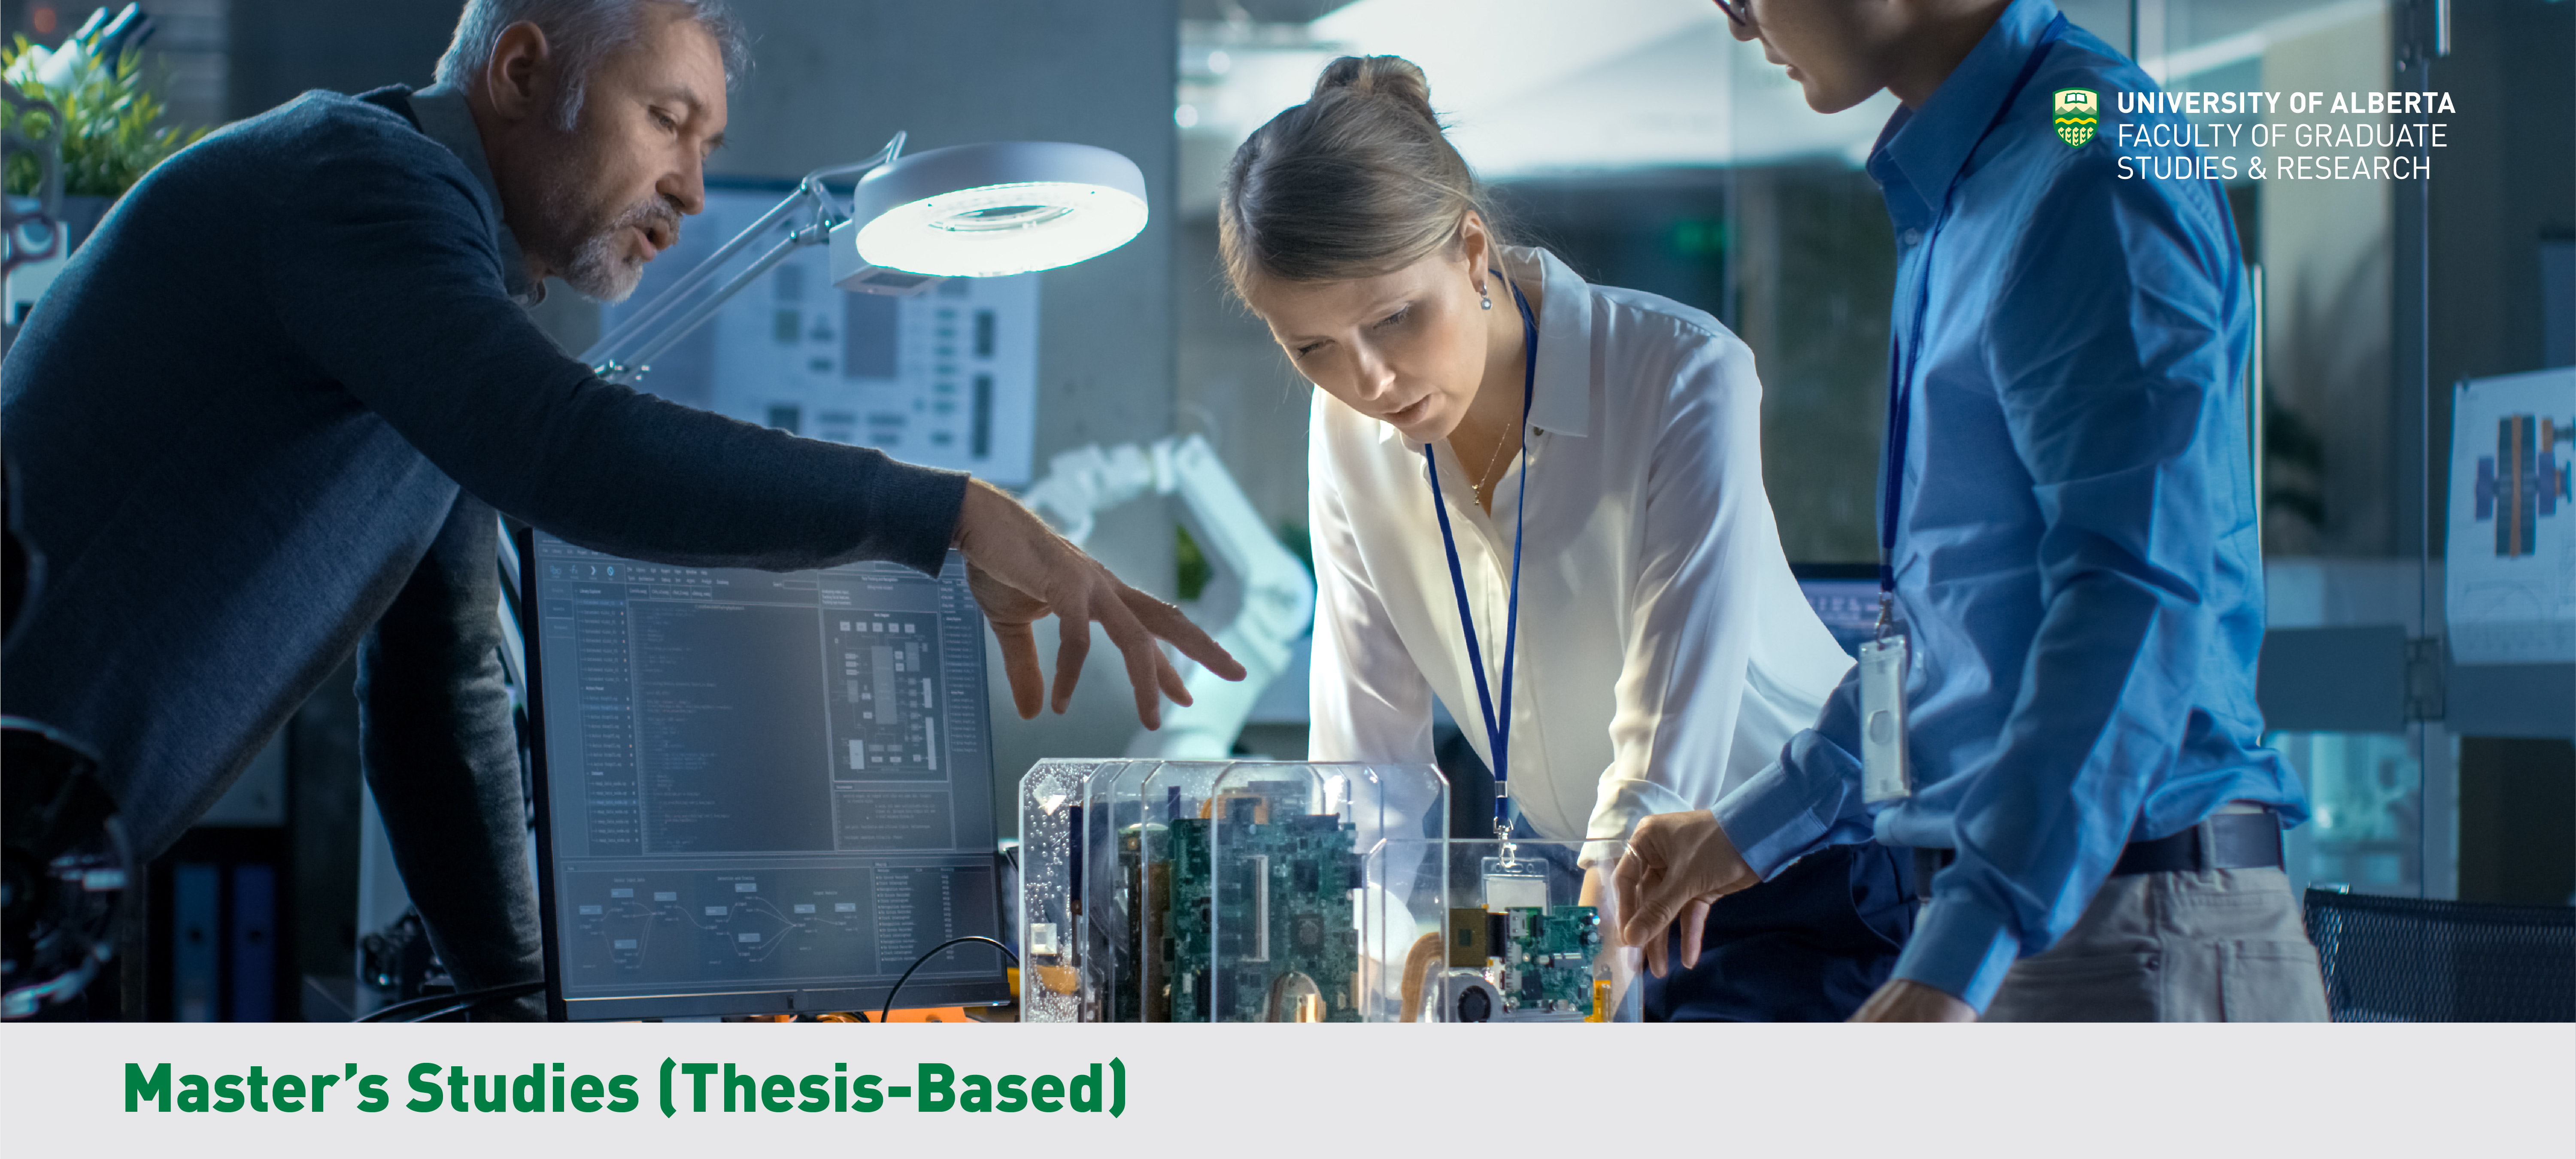 Ualberta thesis professional admission essay editor services for school